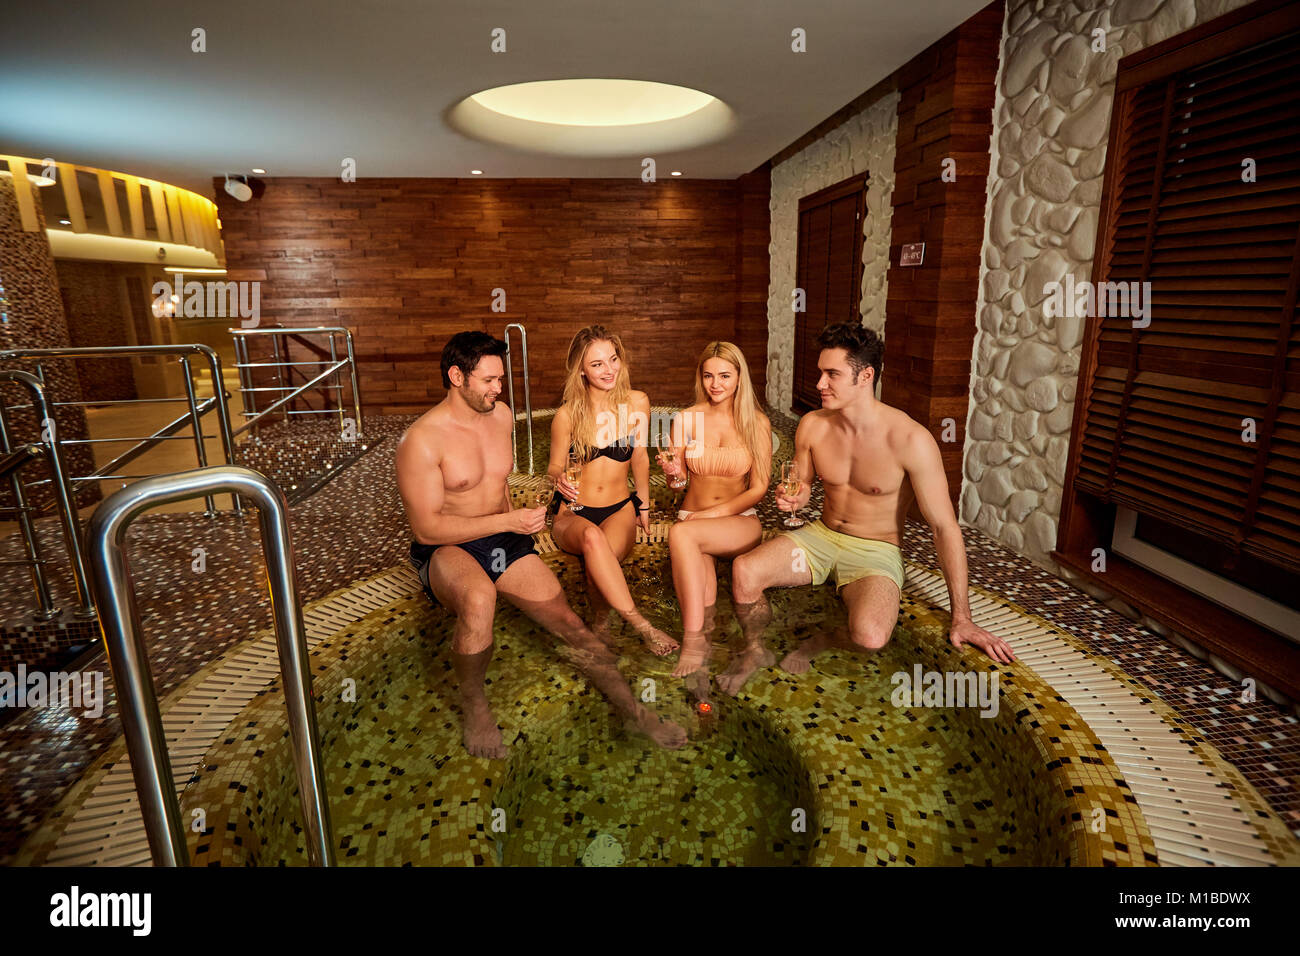 Friends in swimsuits laugh at the jacuzzi in the spa center. - Stock Image